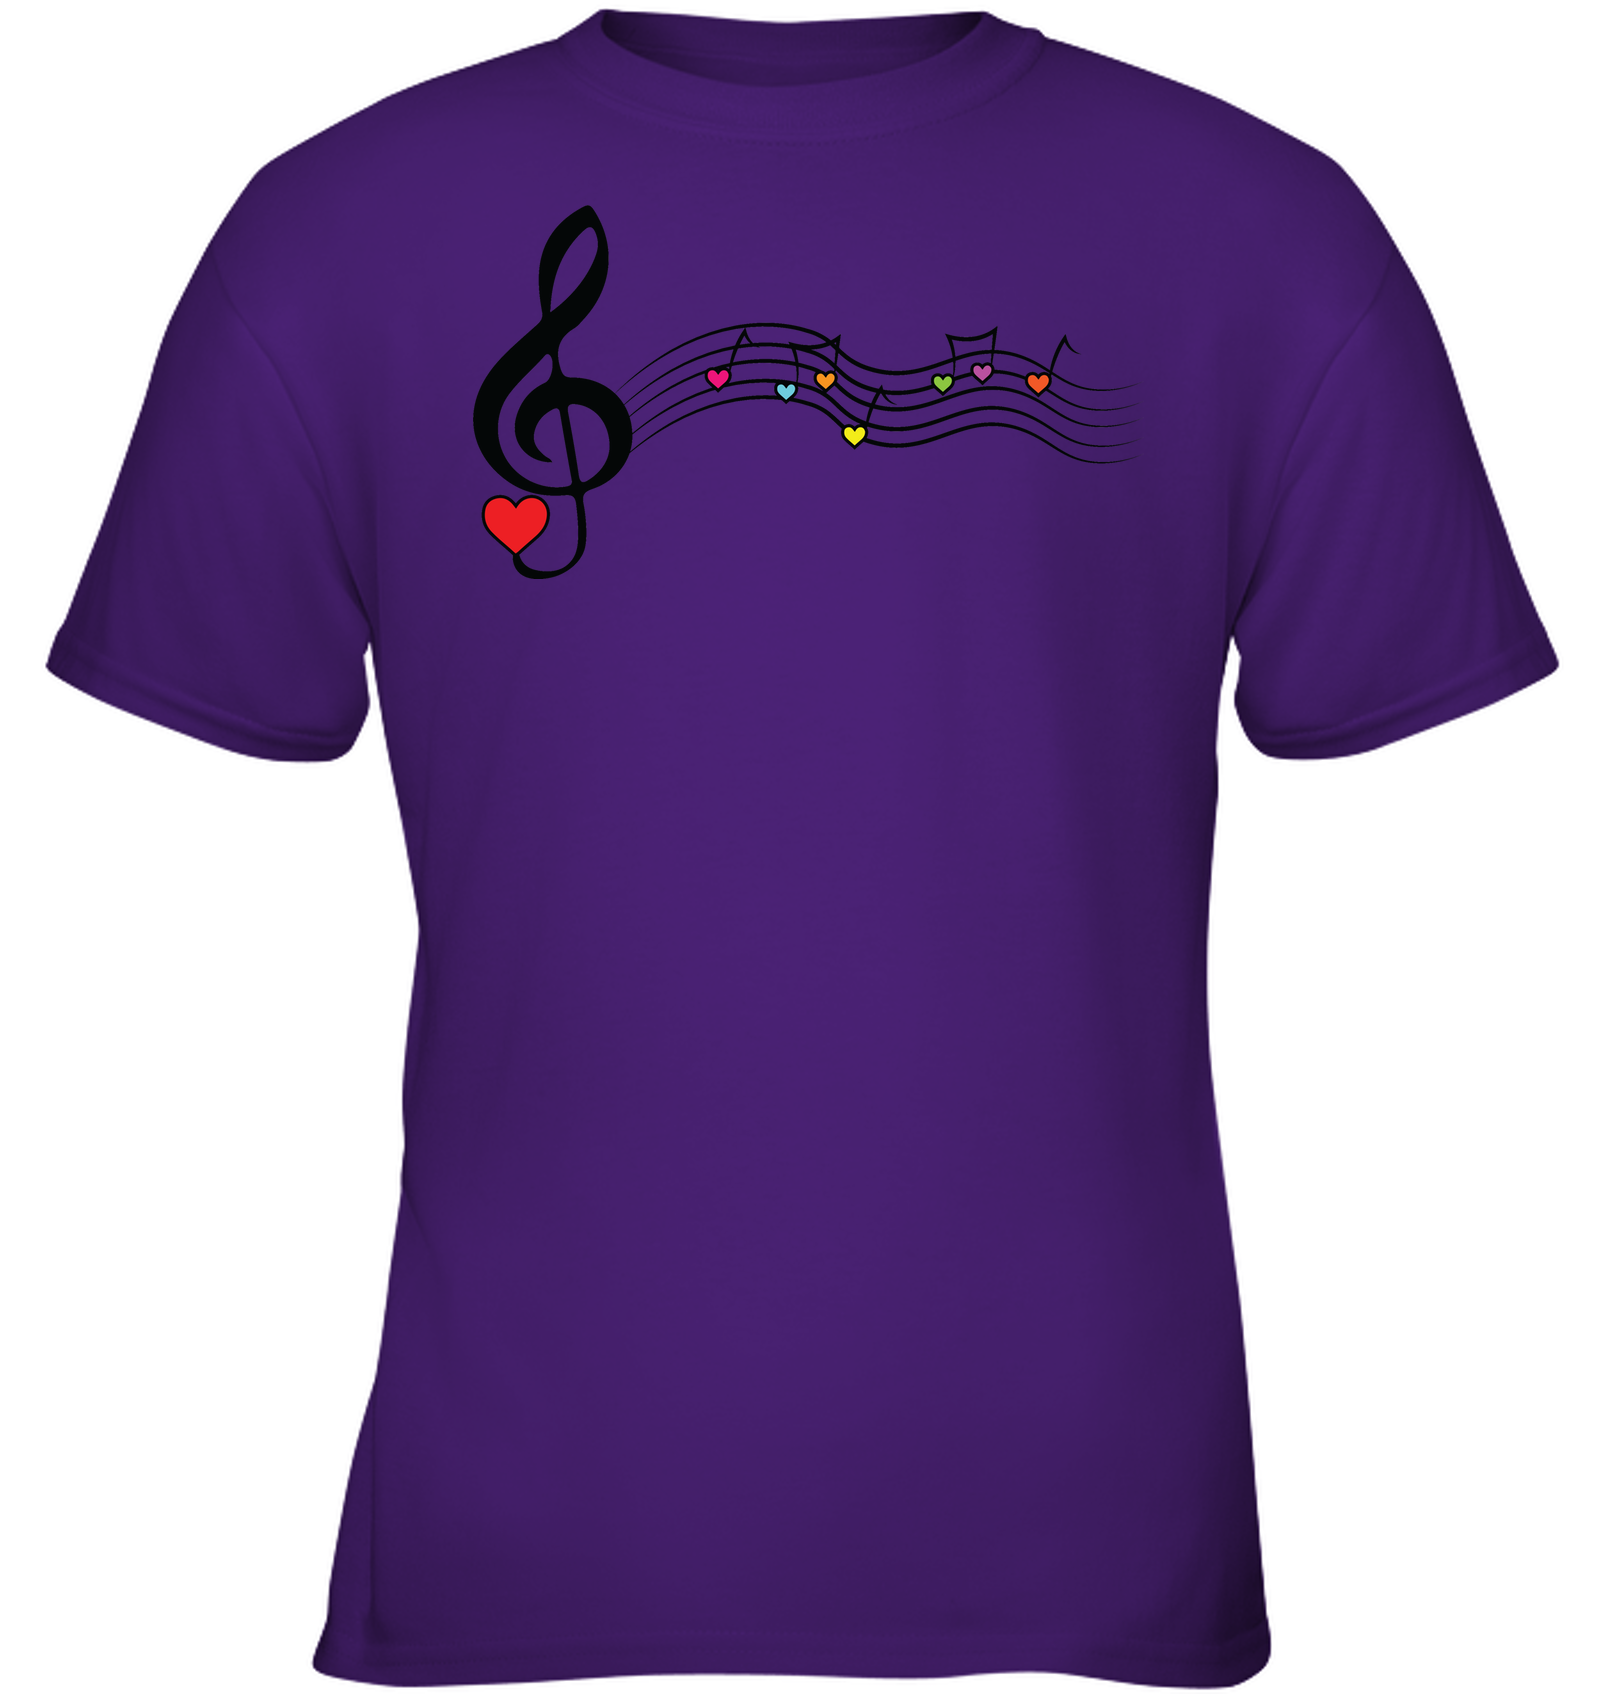 Musical Waves, Heart Notes and Colors - Gildan Youth Short Sleeve T-Shirt